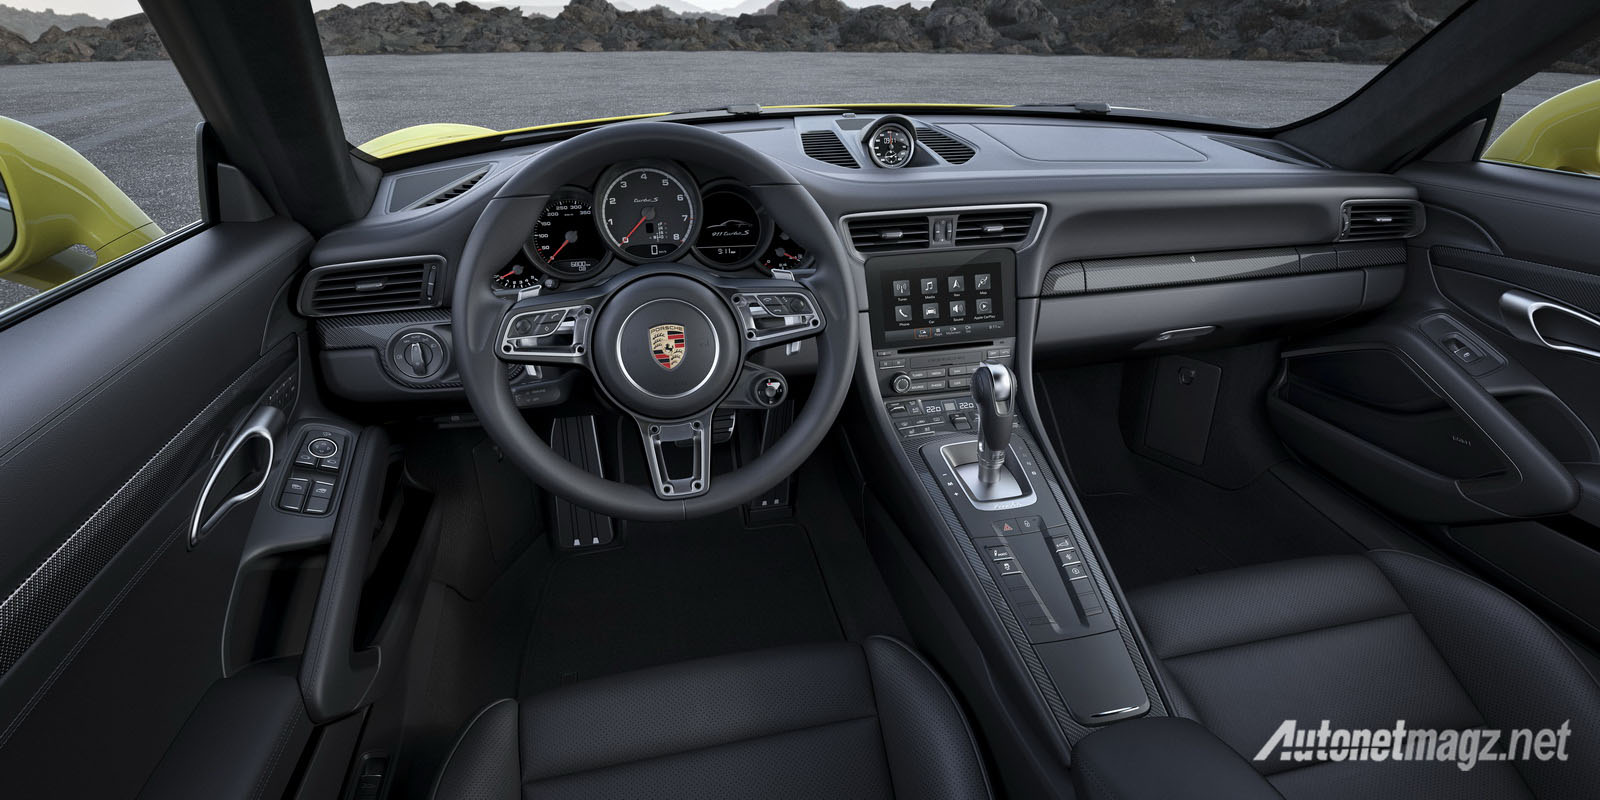 International, porsche-911-turbo-s-2016-interior: Ini Dia Tampilan Baru Porsche 911 Turbo dan 911 Turbo S!